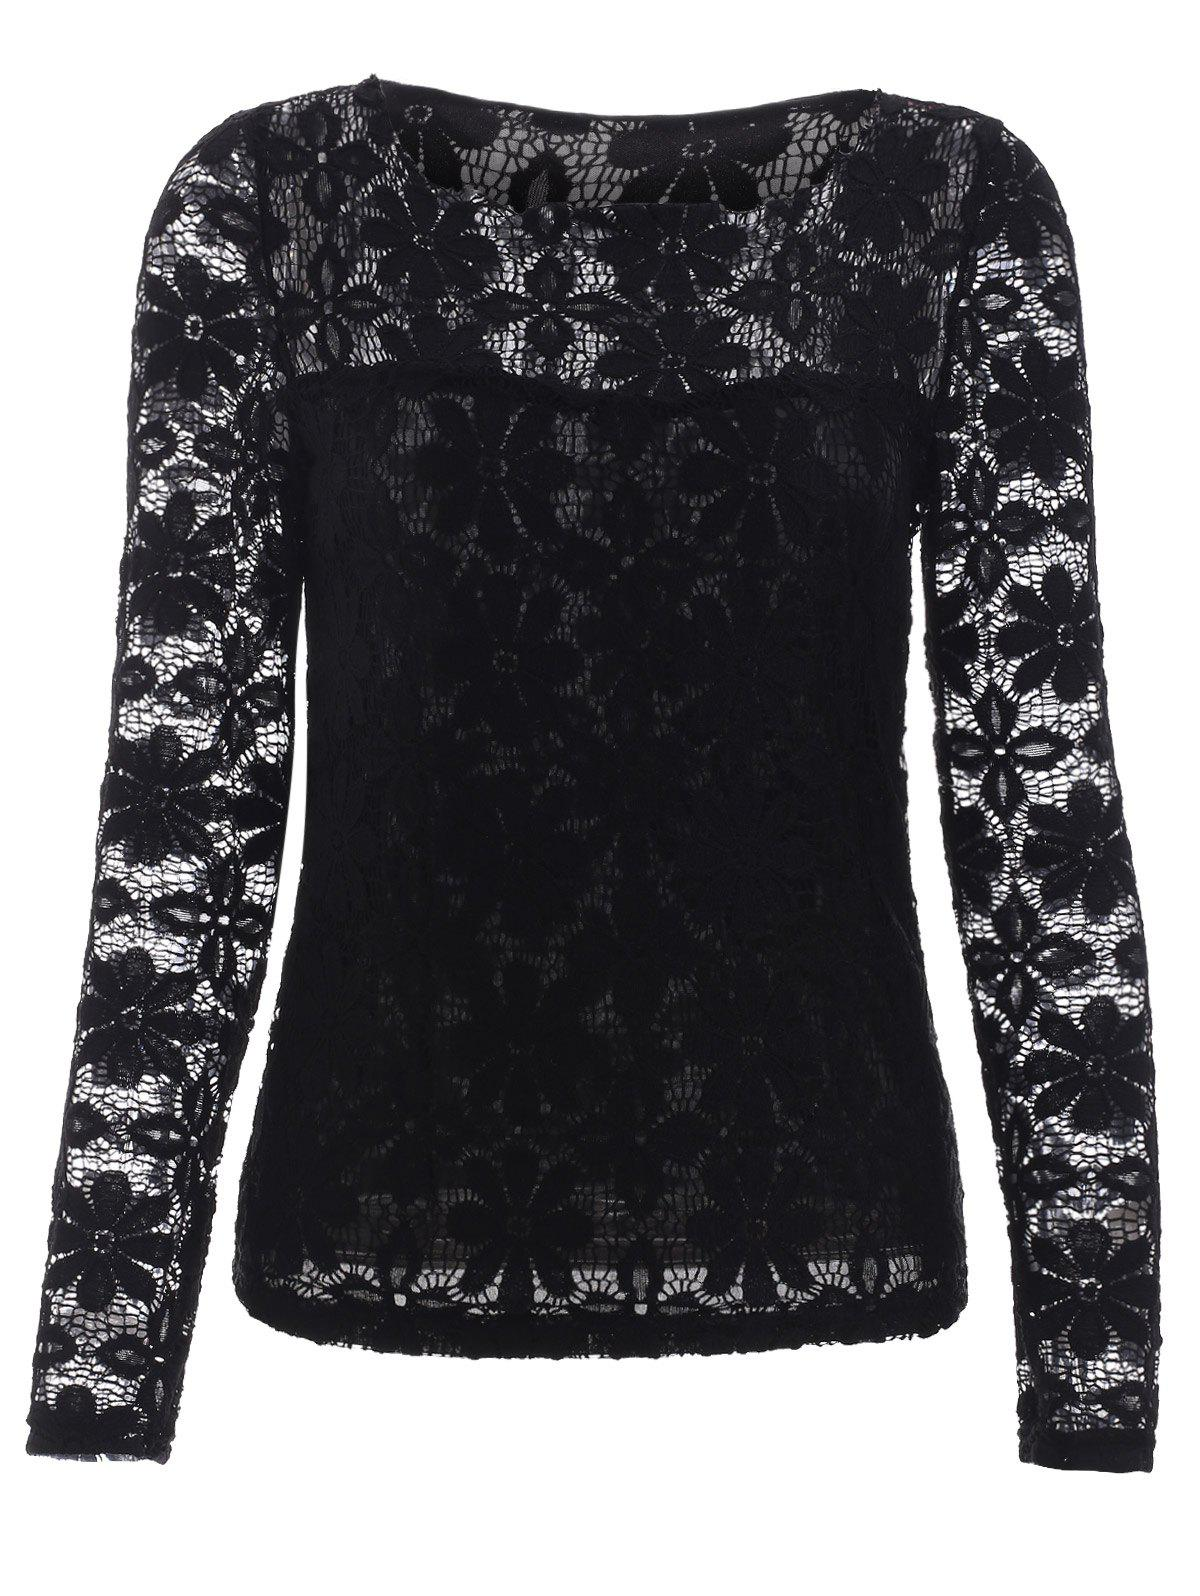 Trendy Long Sleeve Floral Embroidered Translucent Lace Blouse - BLACK 5XL